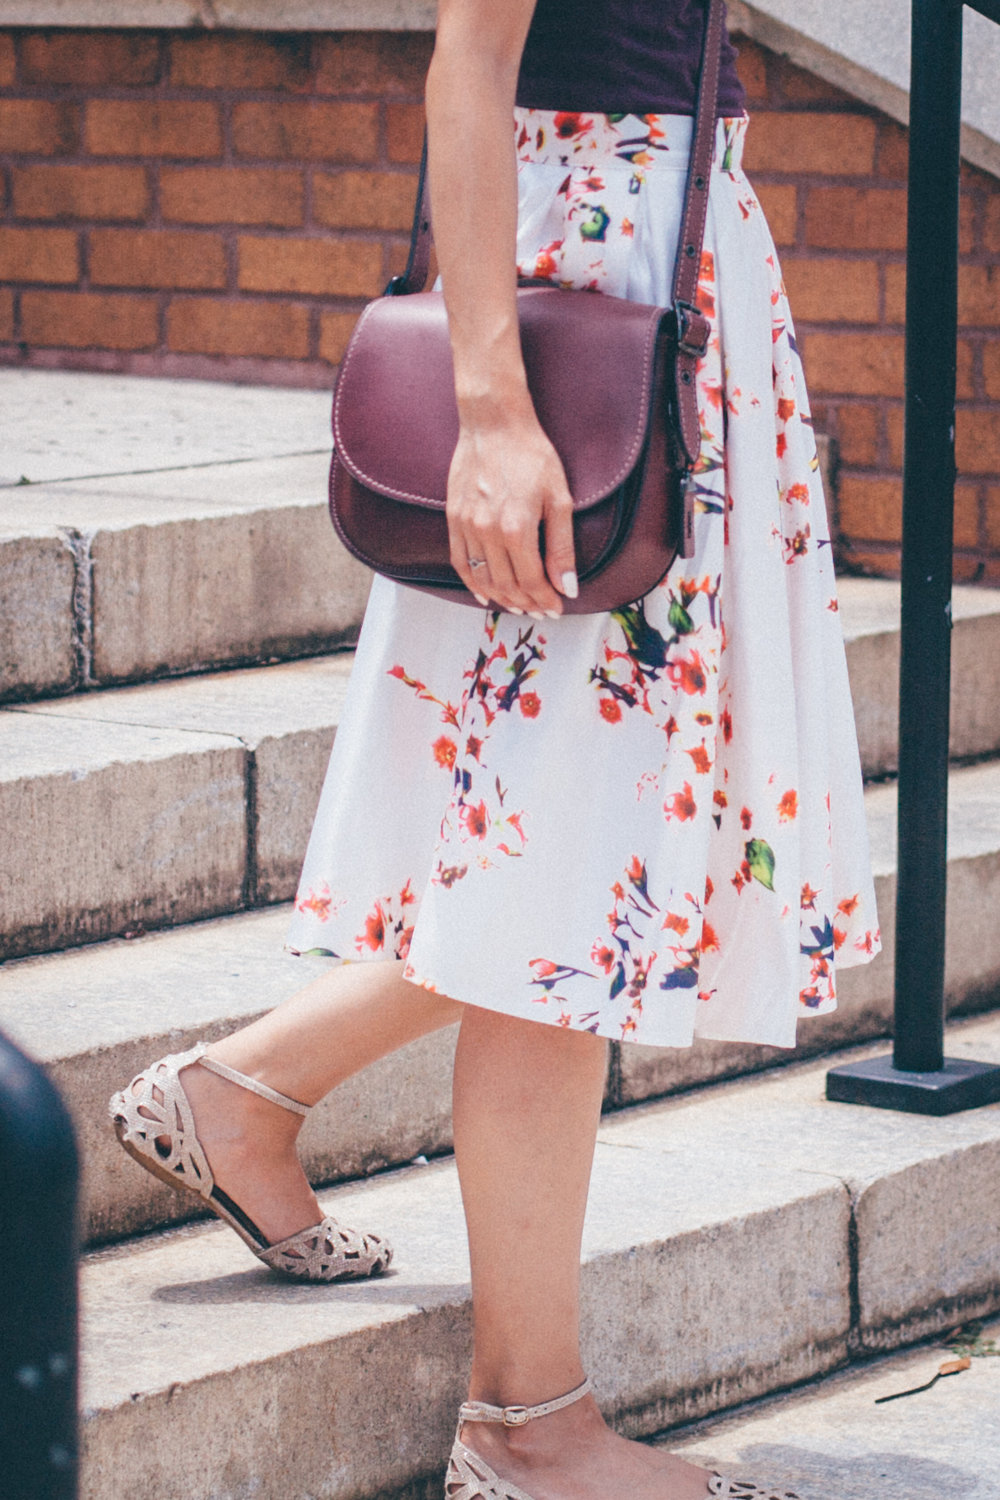 This Jenn Girl - Shein Floral Skirt 2